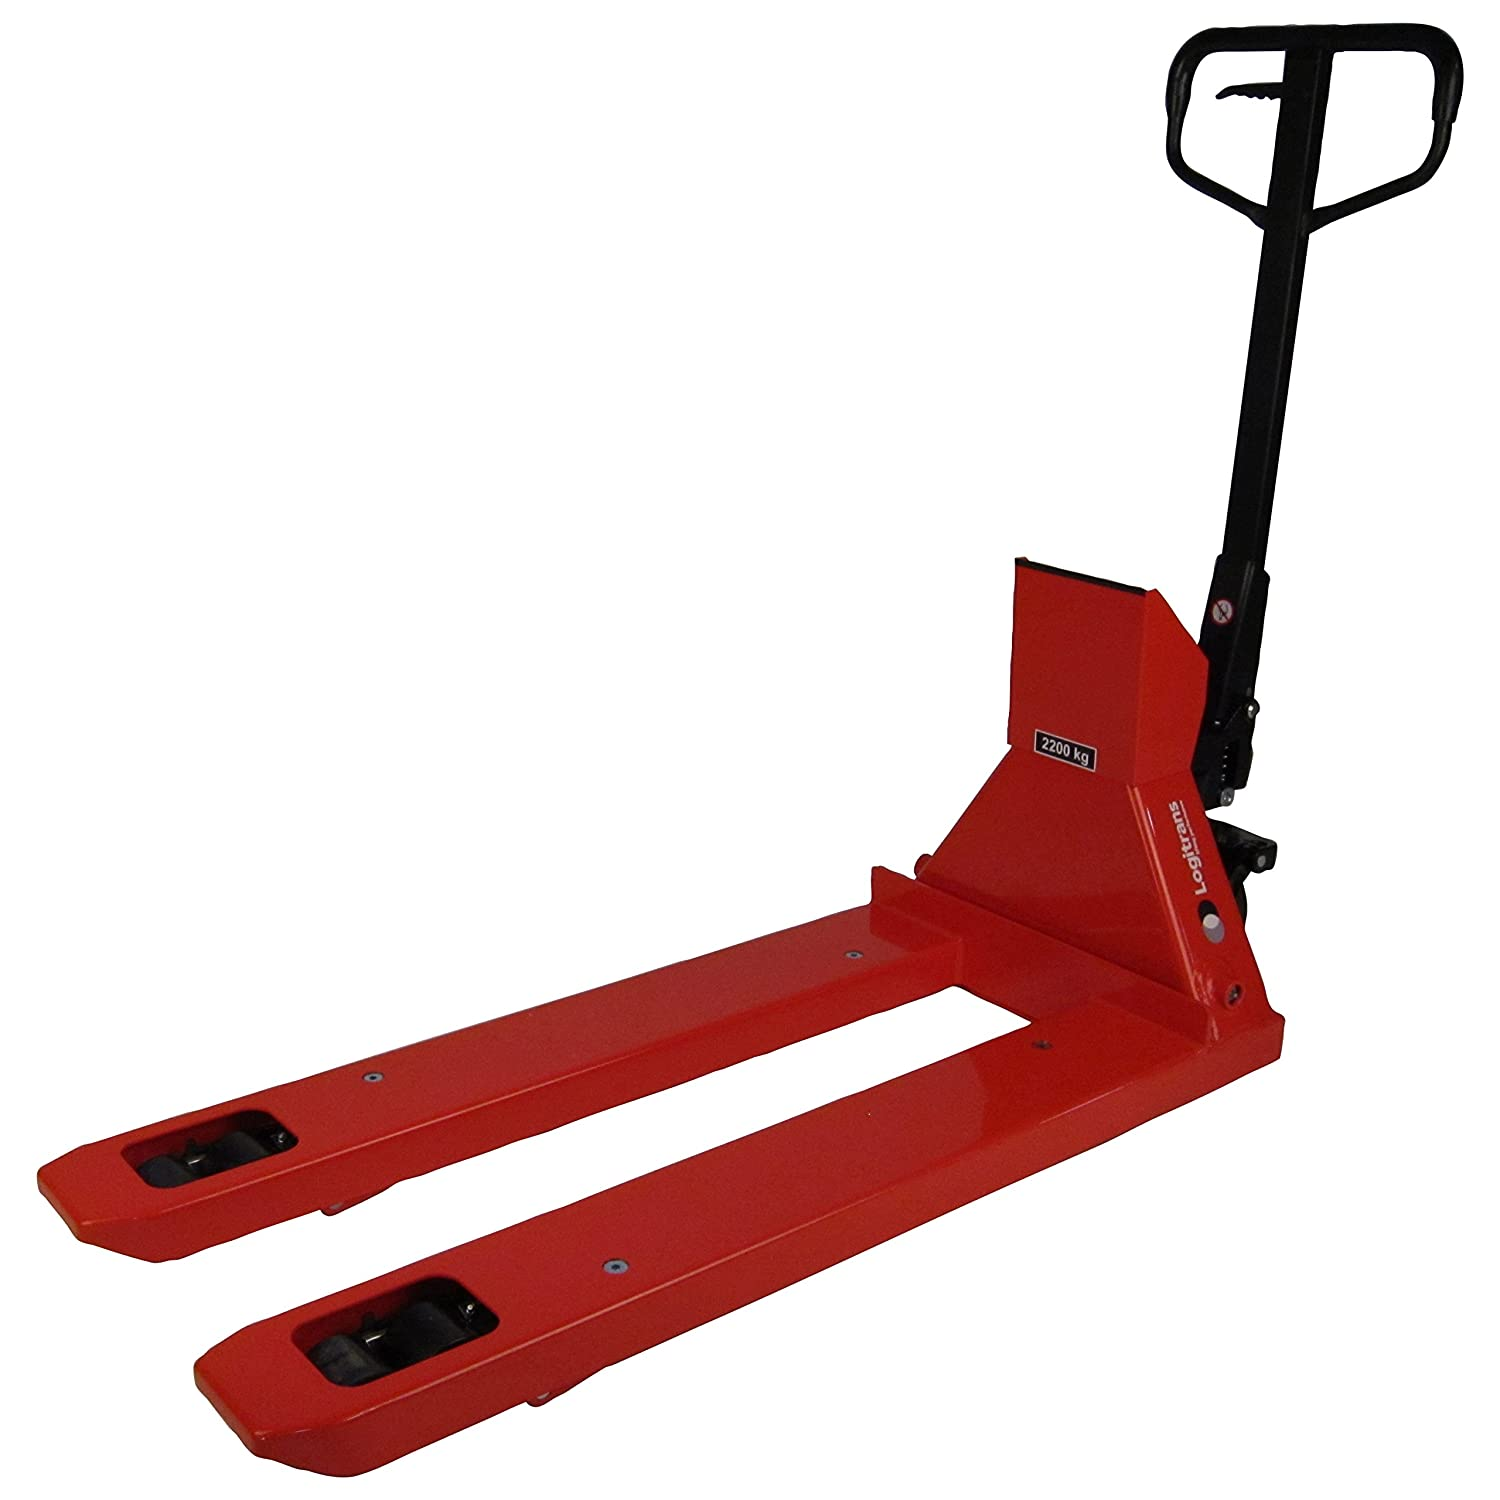 Interthor Economy Scale Pallet Jack Legal For Trade 22 x 45-4,400 lbs